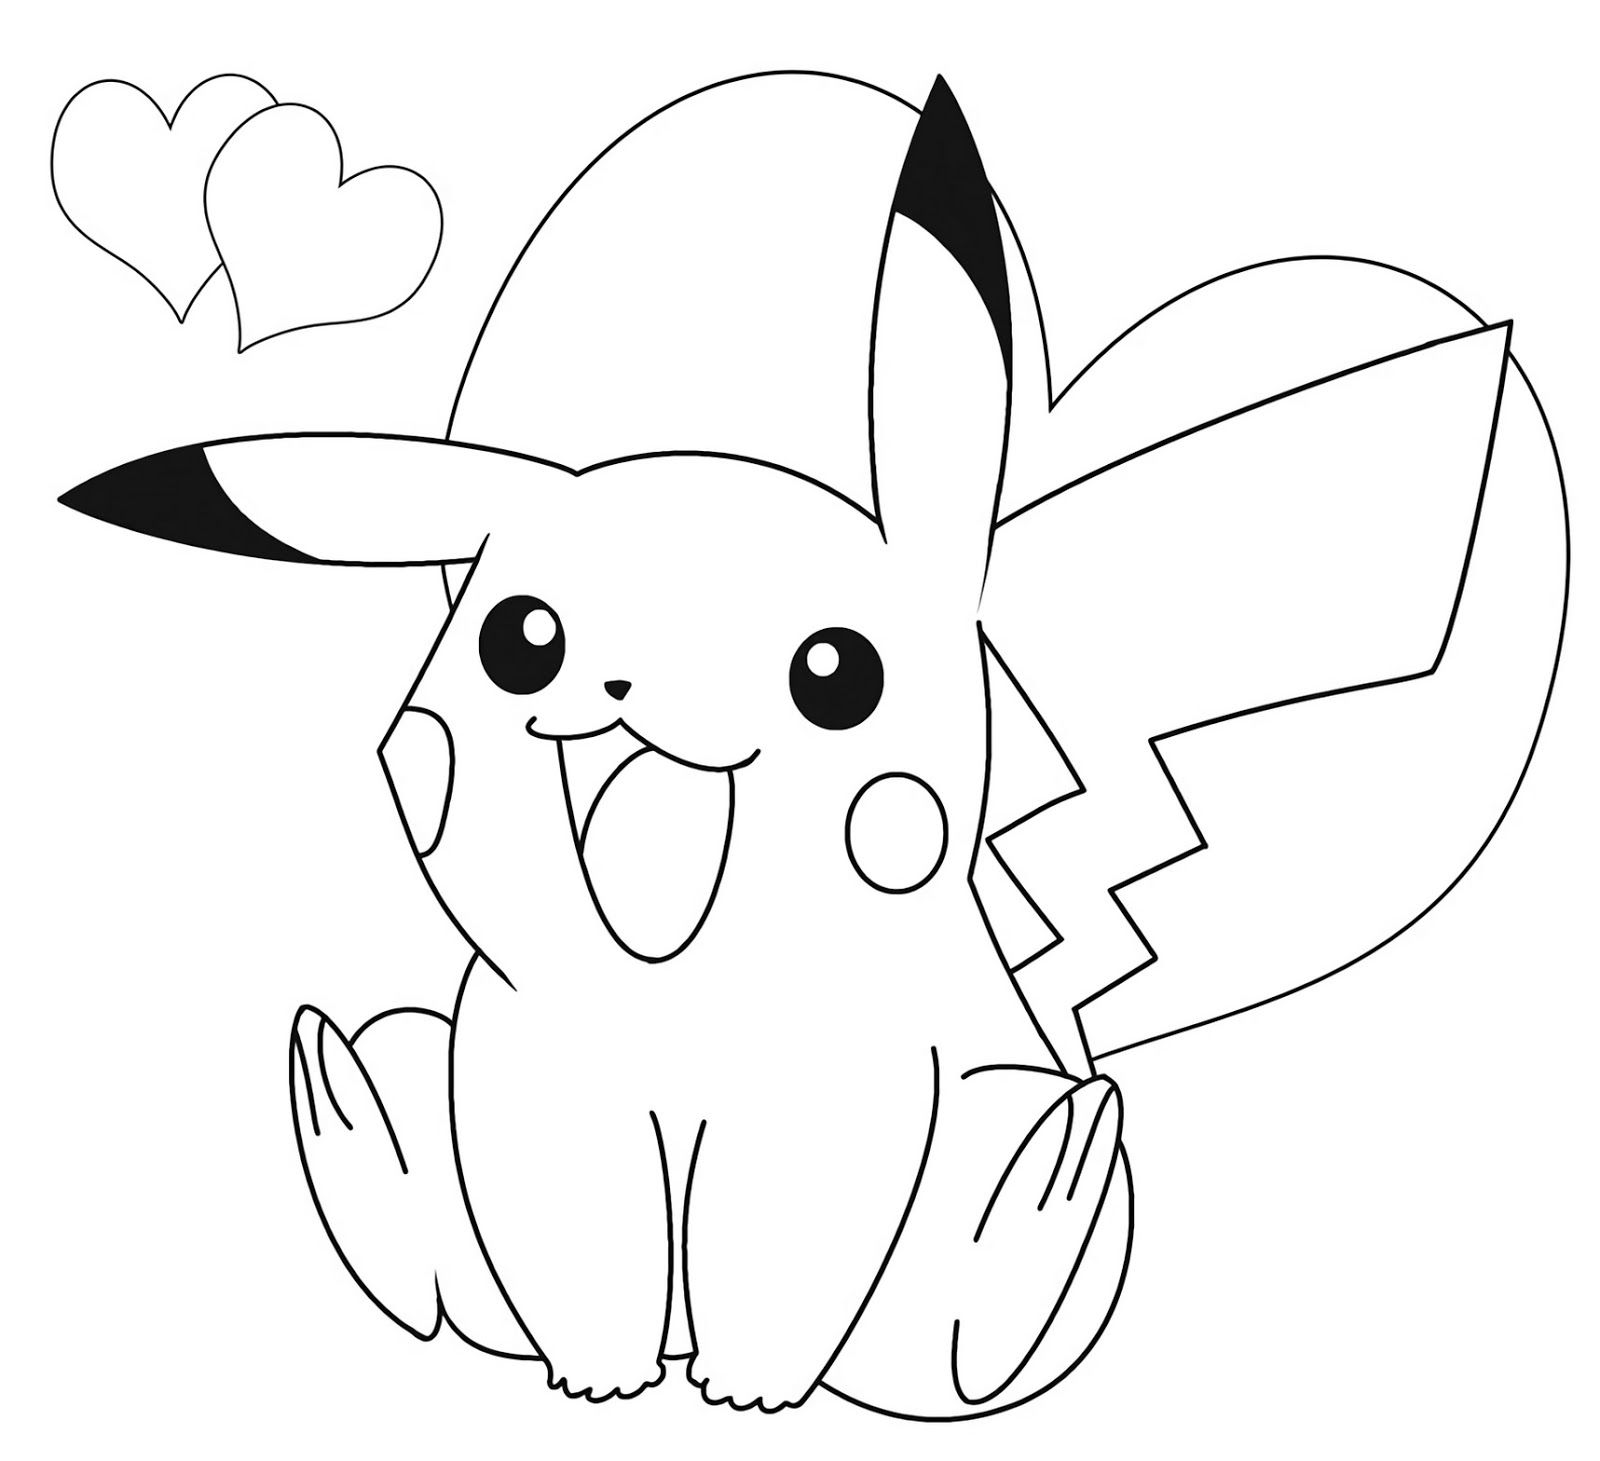 Cute Love Pokemon Go Pikachu Coloring Pictures Pokemon Coloring Pages Pikachu Coloring Page Pokemon Coloring